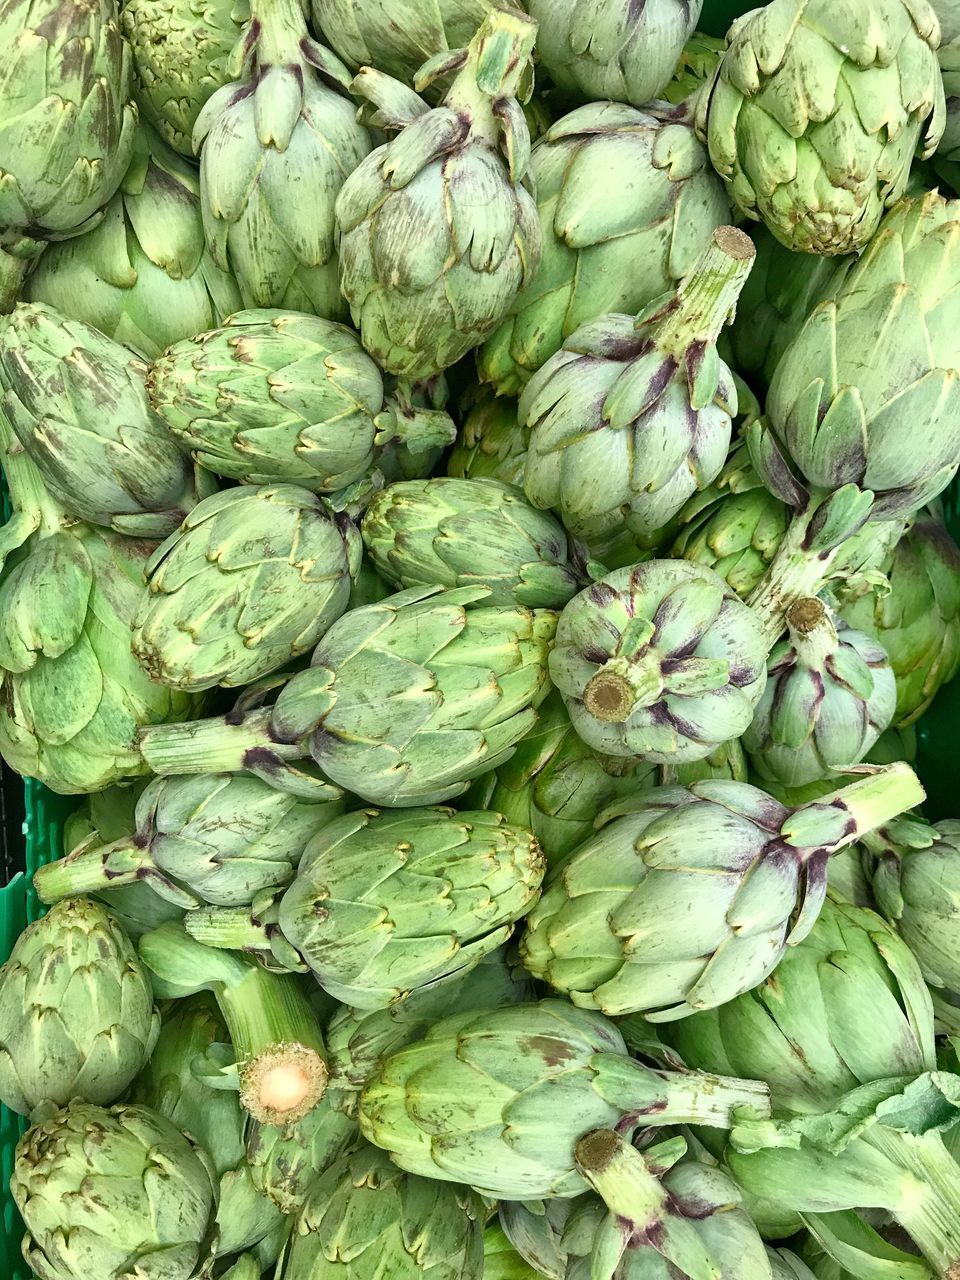 vegetable, healthy eating, food and drink, green color, food, artichoke, freshness, full frame, backgrounds, no people, market, raw food, abundance, retail, for sale, brussels sprout, large group of objects, directly above, day, outdoors, close-up